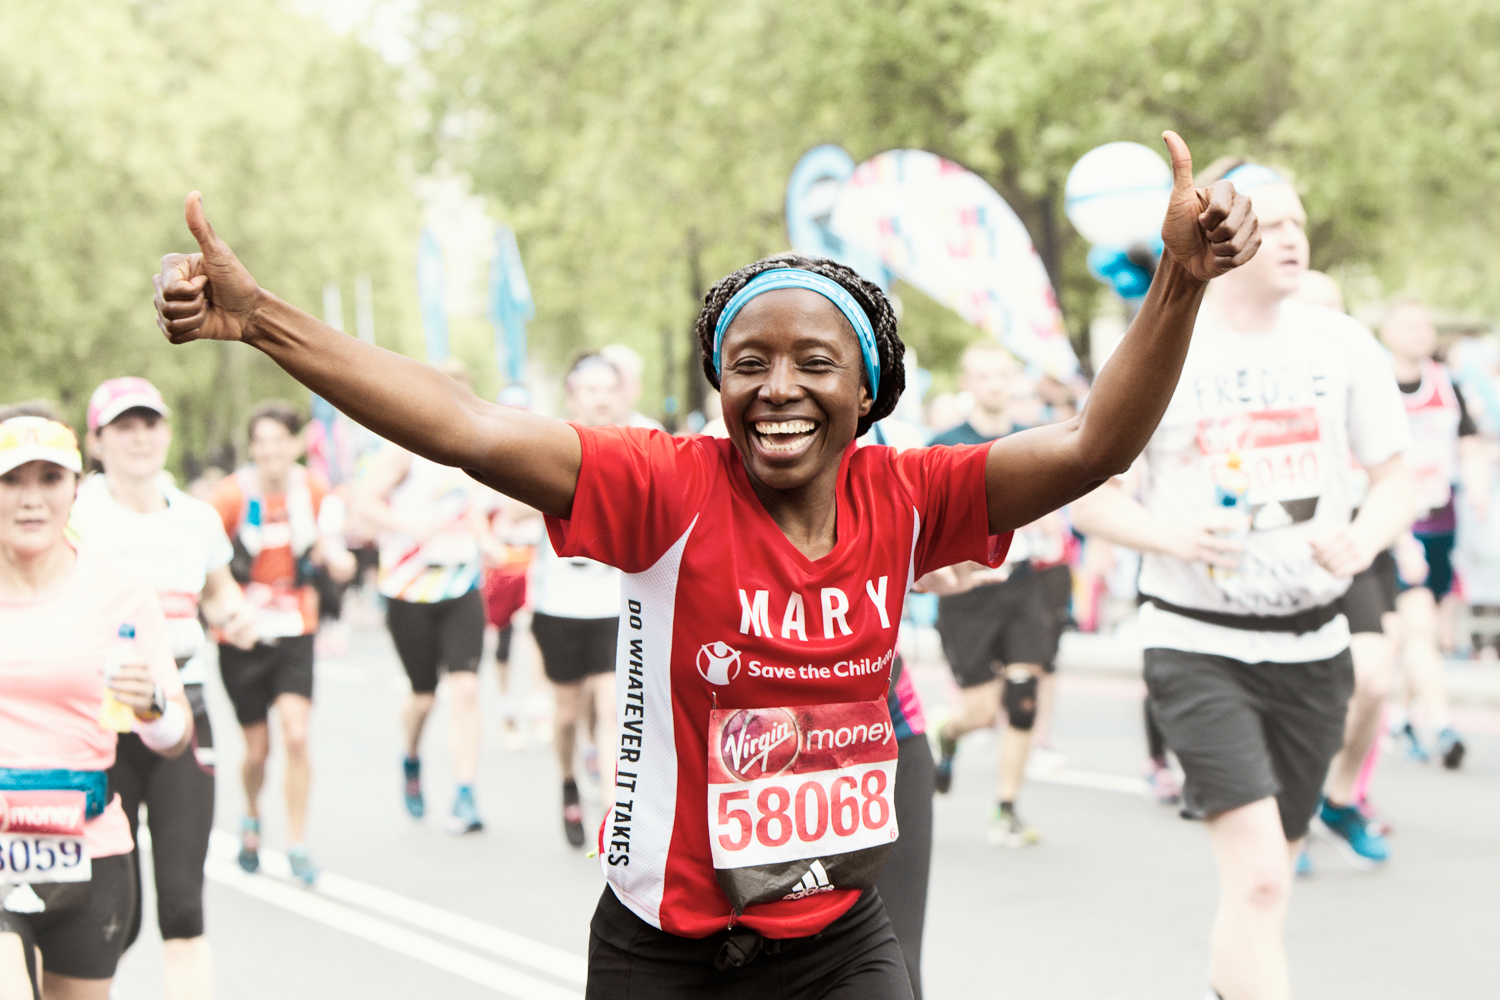 London Marathon for Save the Children